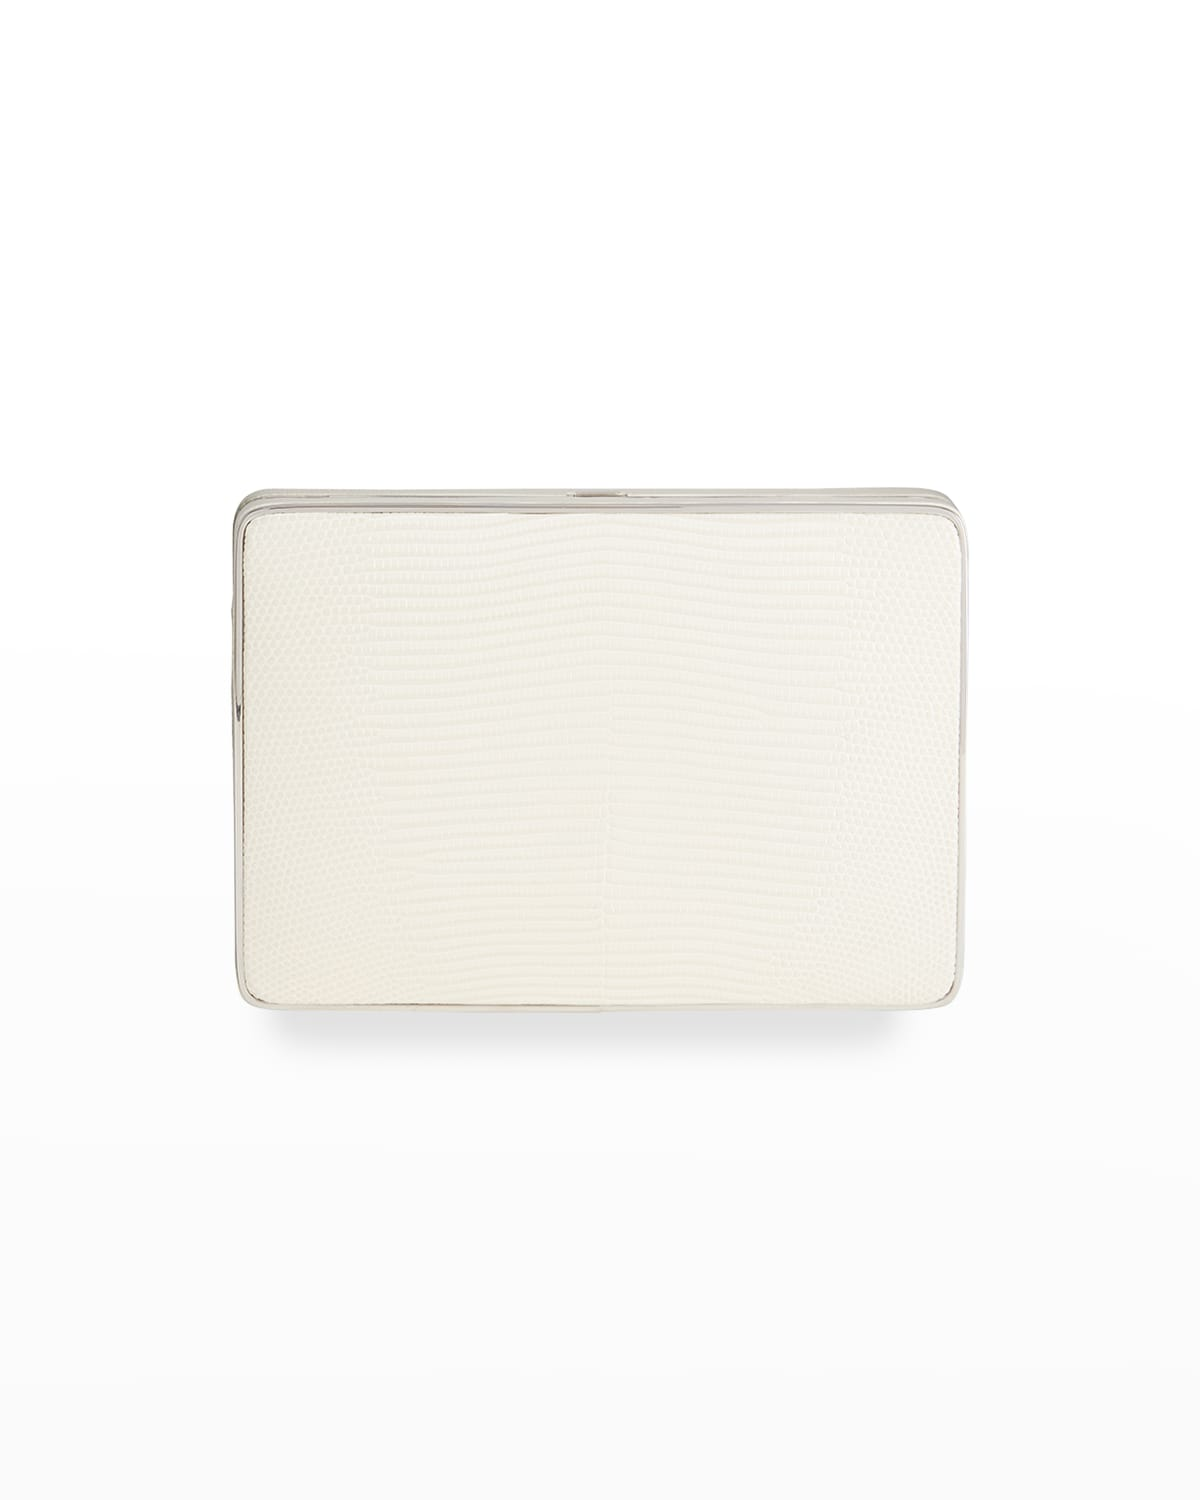 Square Compact Clutch Bag